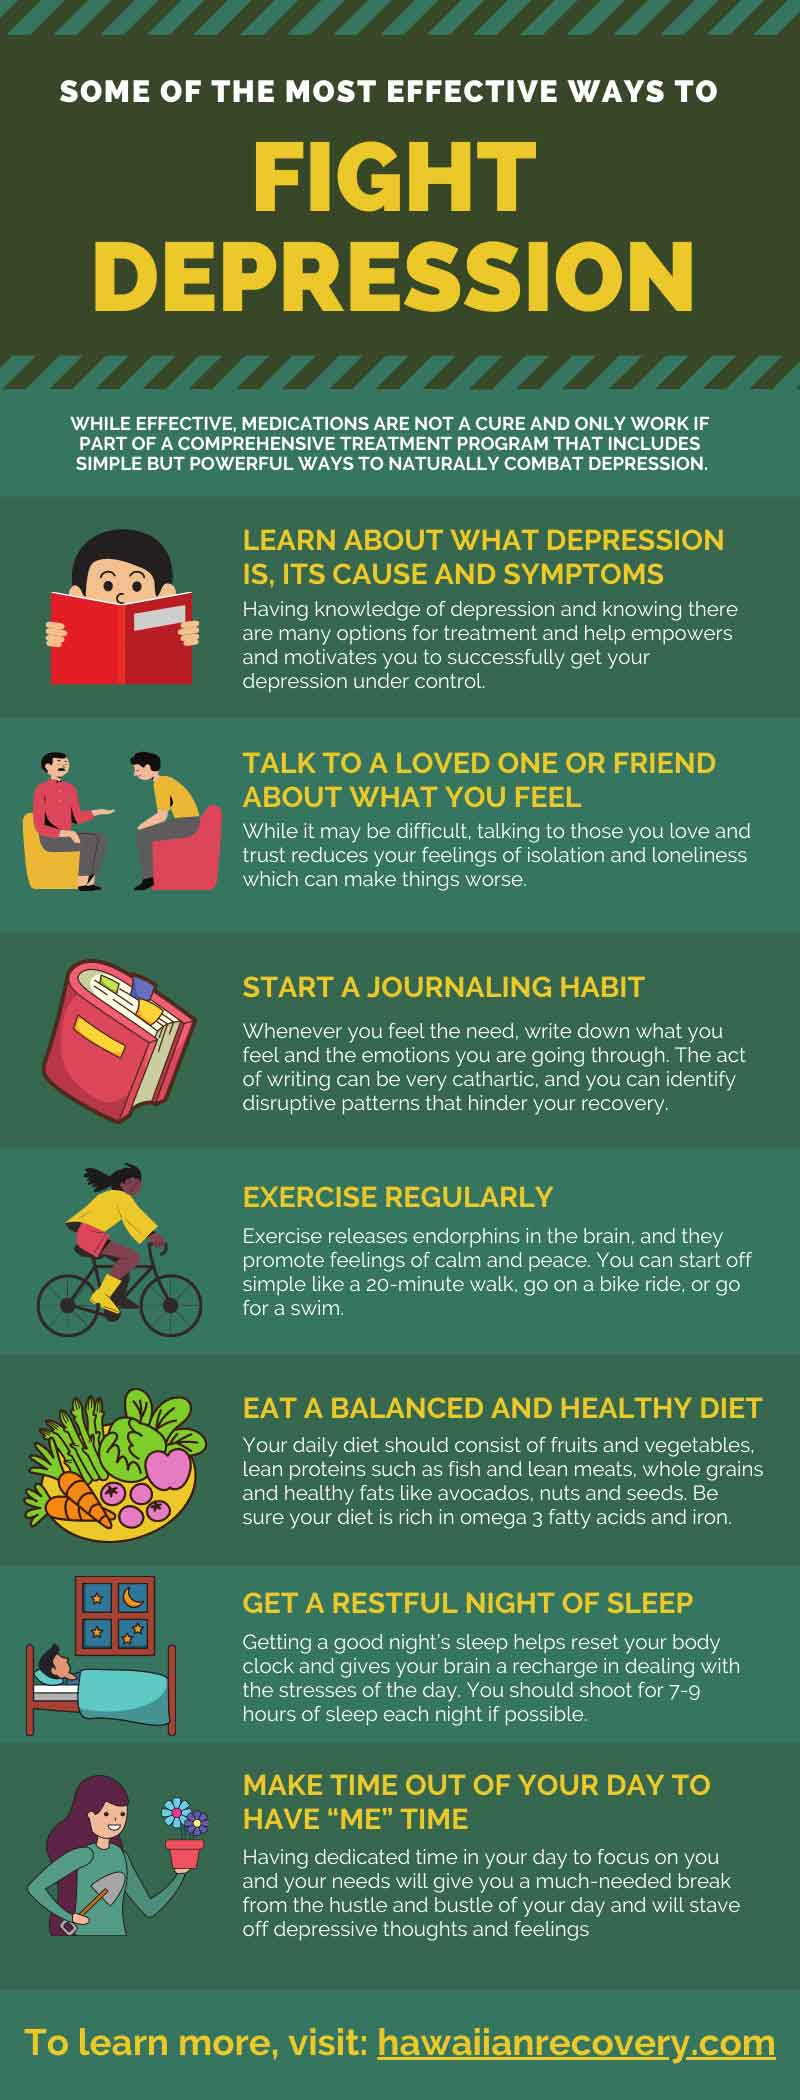 Some of the effective ways to find depression